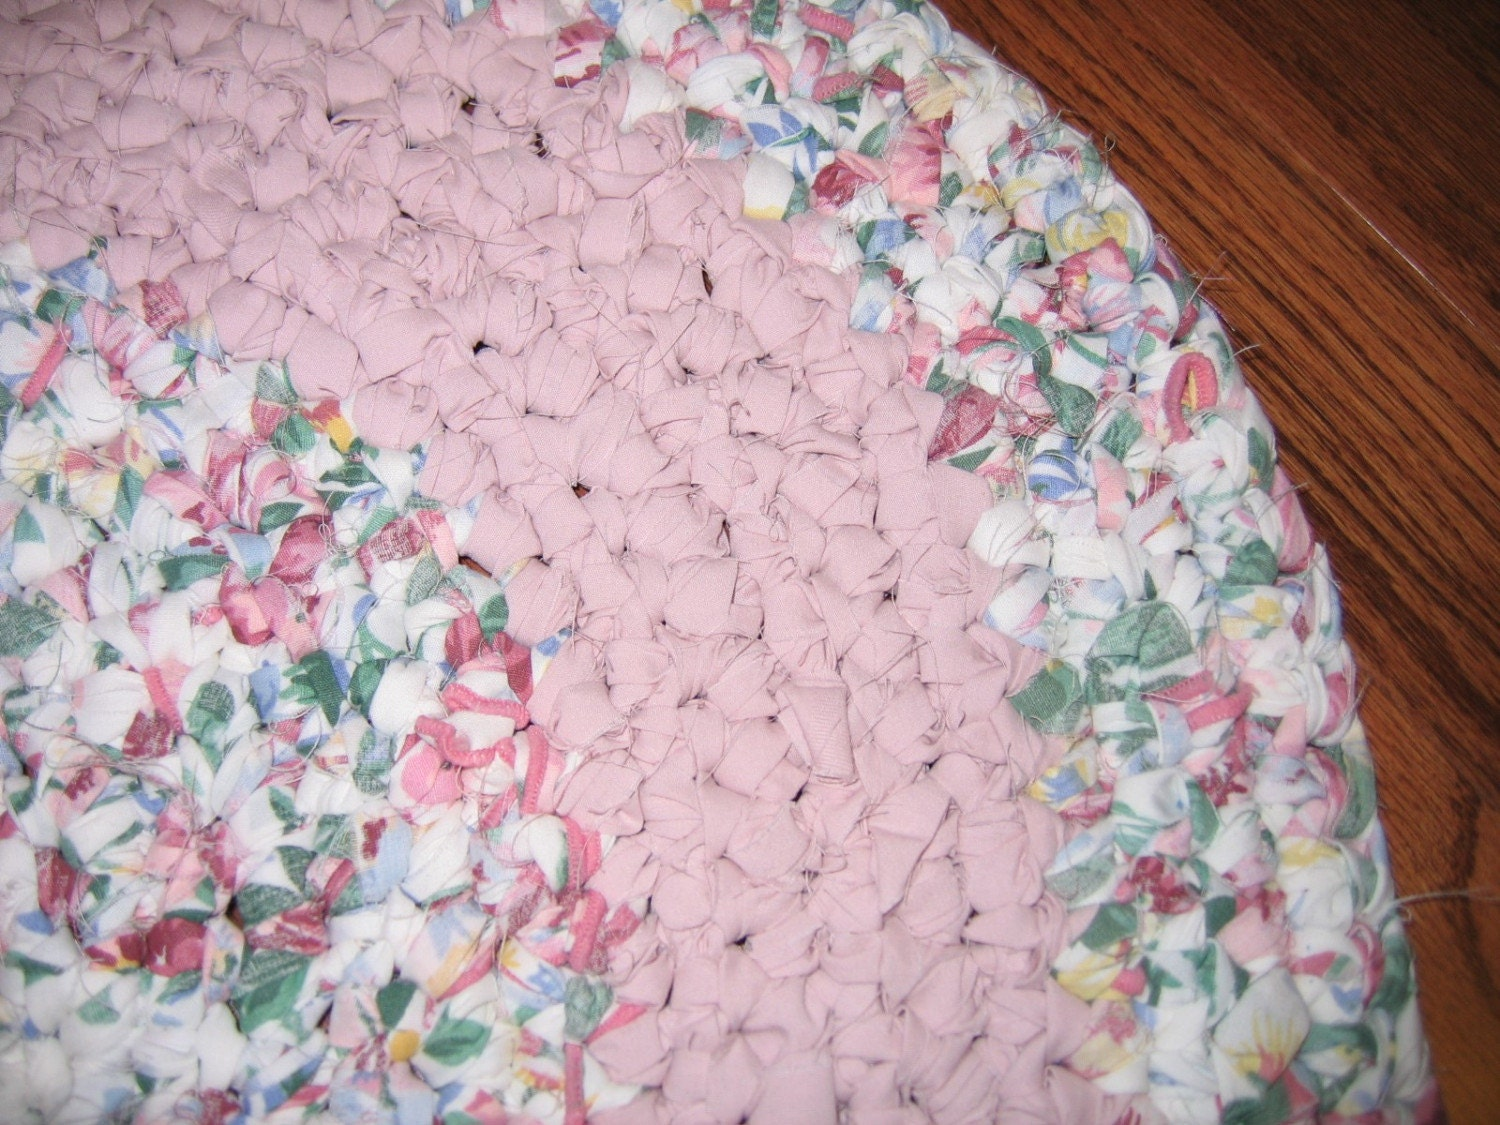 Crocheted Oval Rag Rug by RaggedyAnns on Etsy